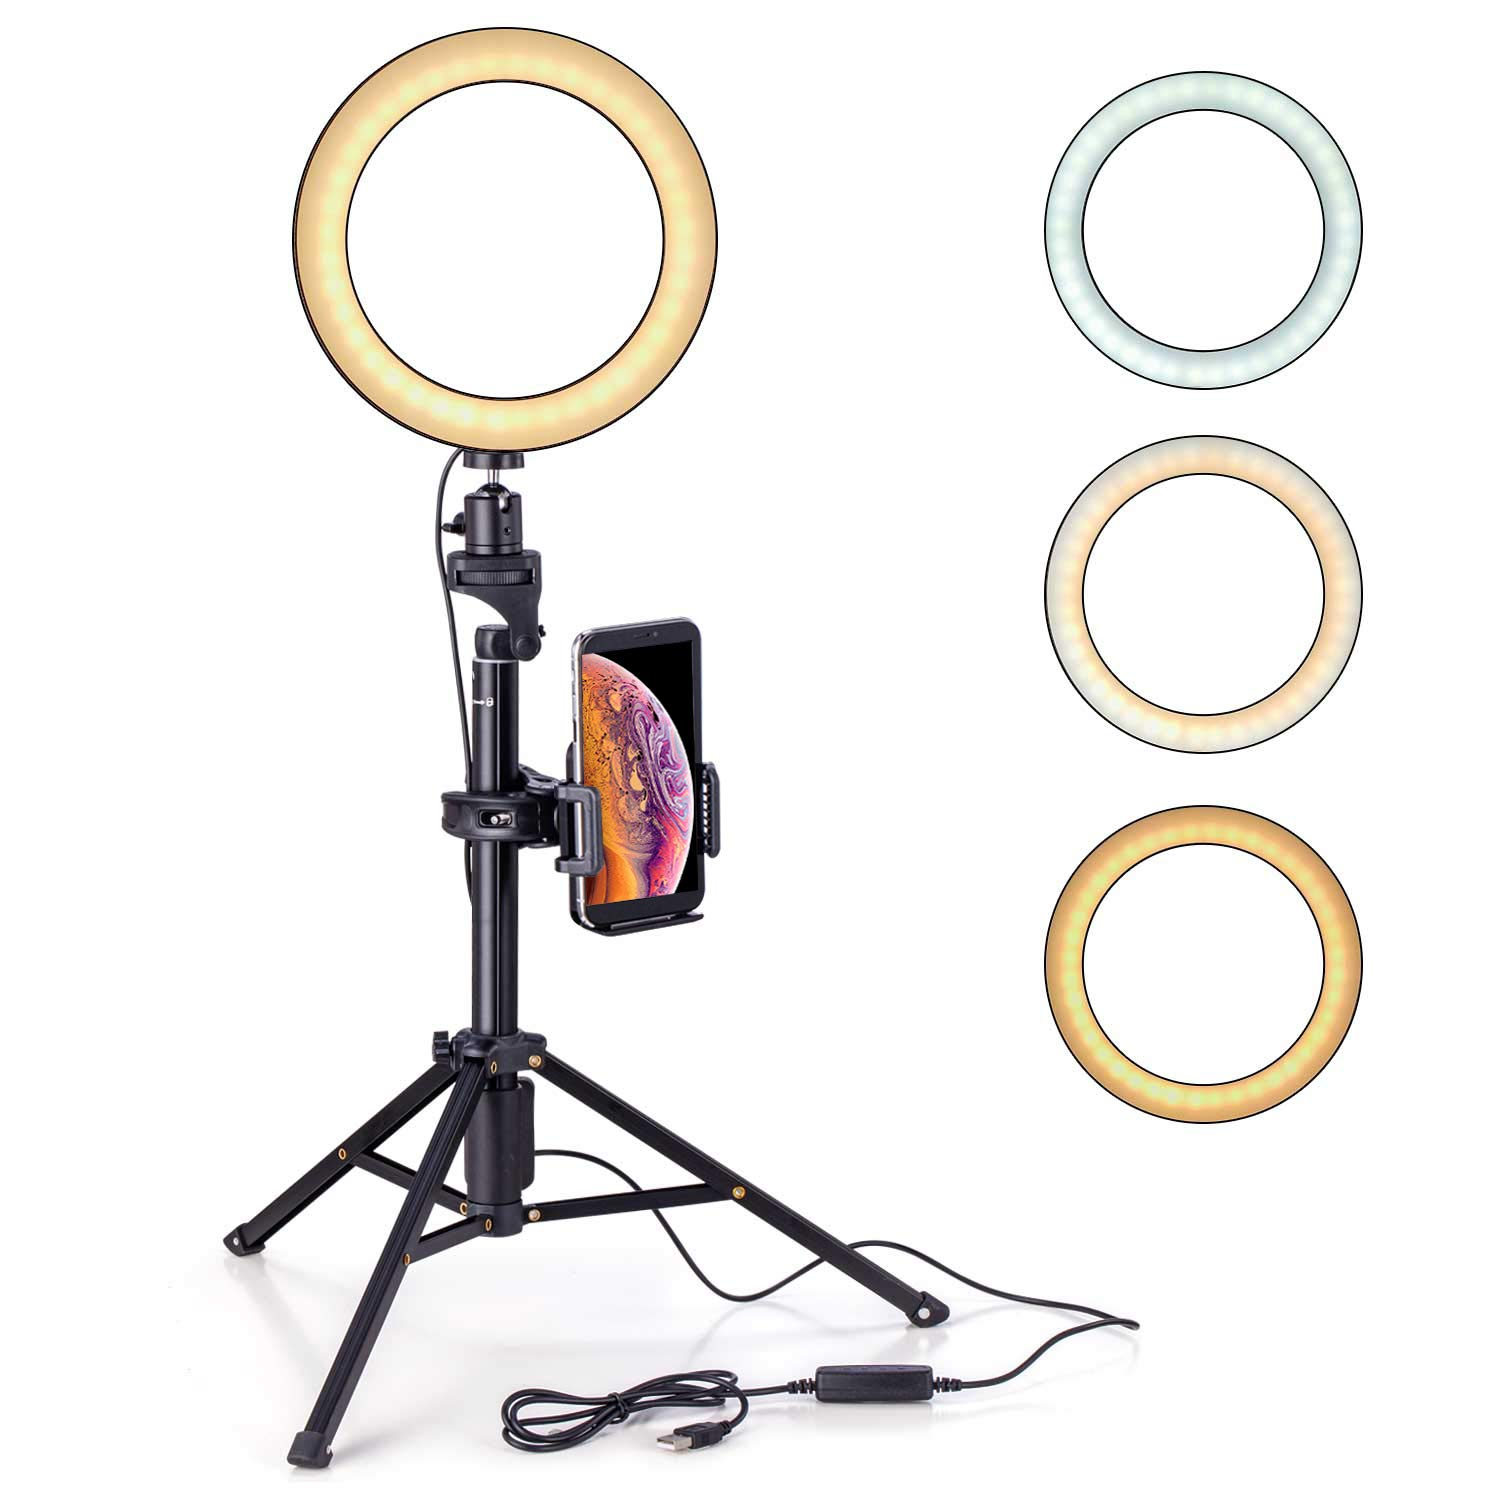 Eocean 8 inches Selfie Ring Light with Tripod Ring Light with Stand(54 inchesTripod) for YouTube/Live Stream/Makeup, Mini Led Camera Ringlight for Vlog/Video/Photography Compatible with iPhone Android by Eocean